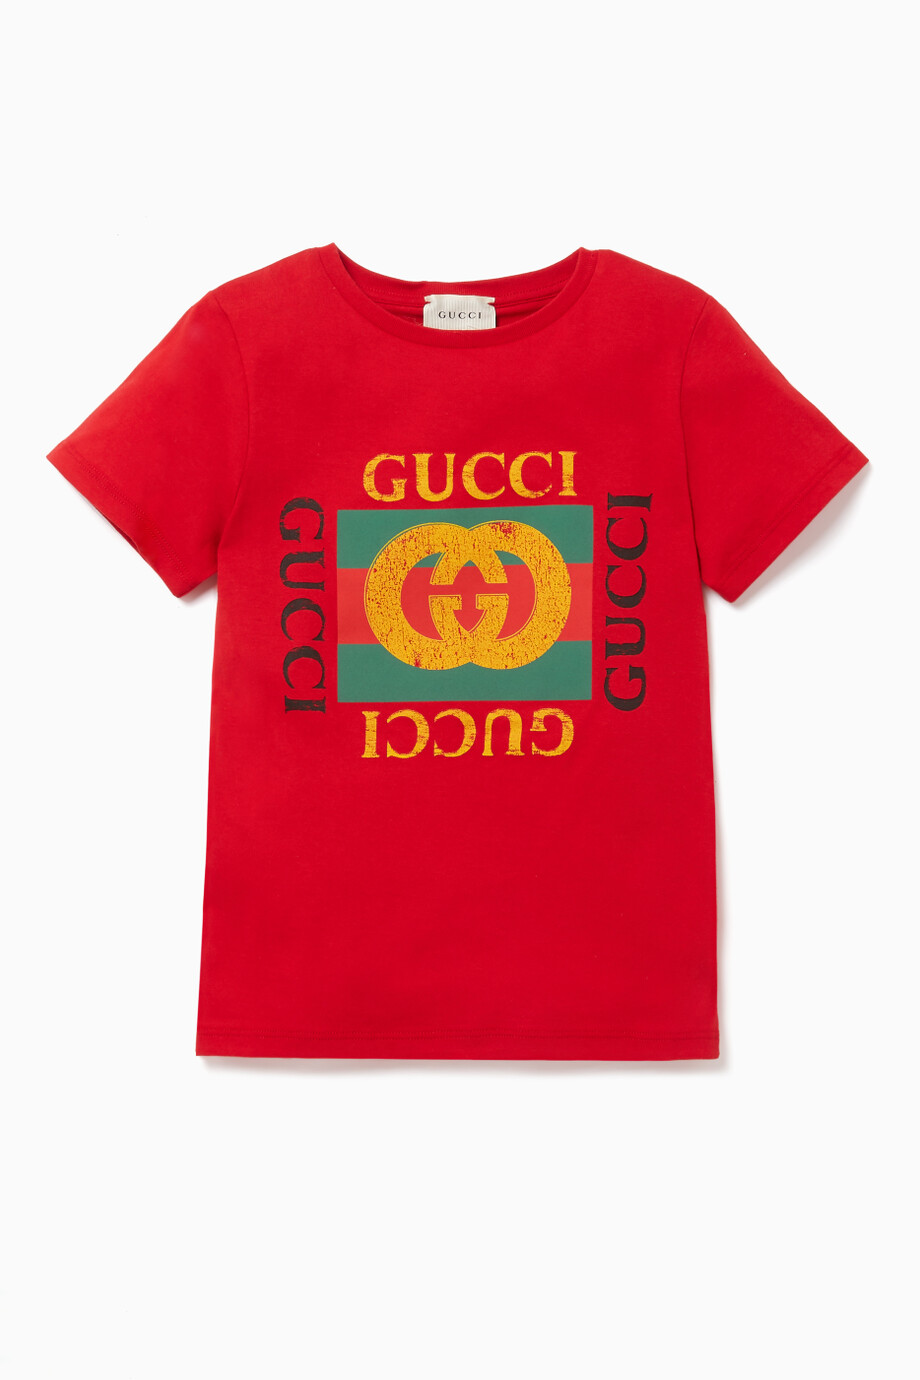 de76be2c8 Shop Gucci Red Retro Logo Print T-Shirt for Kids | Ounass Saudi